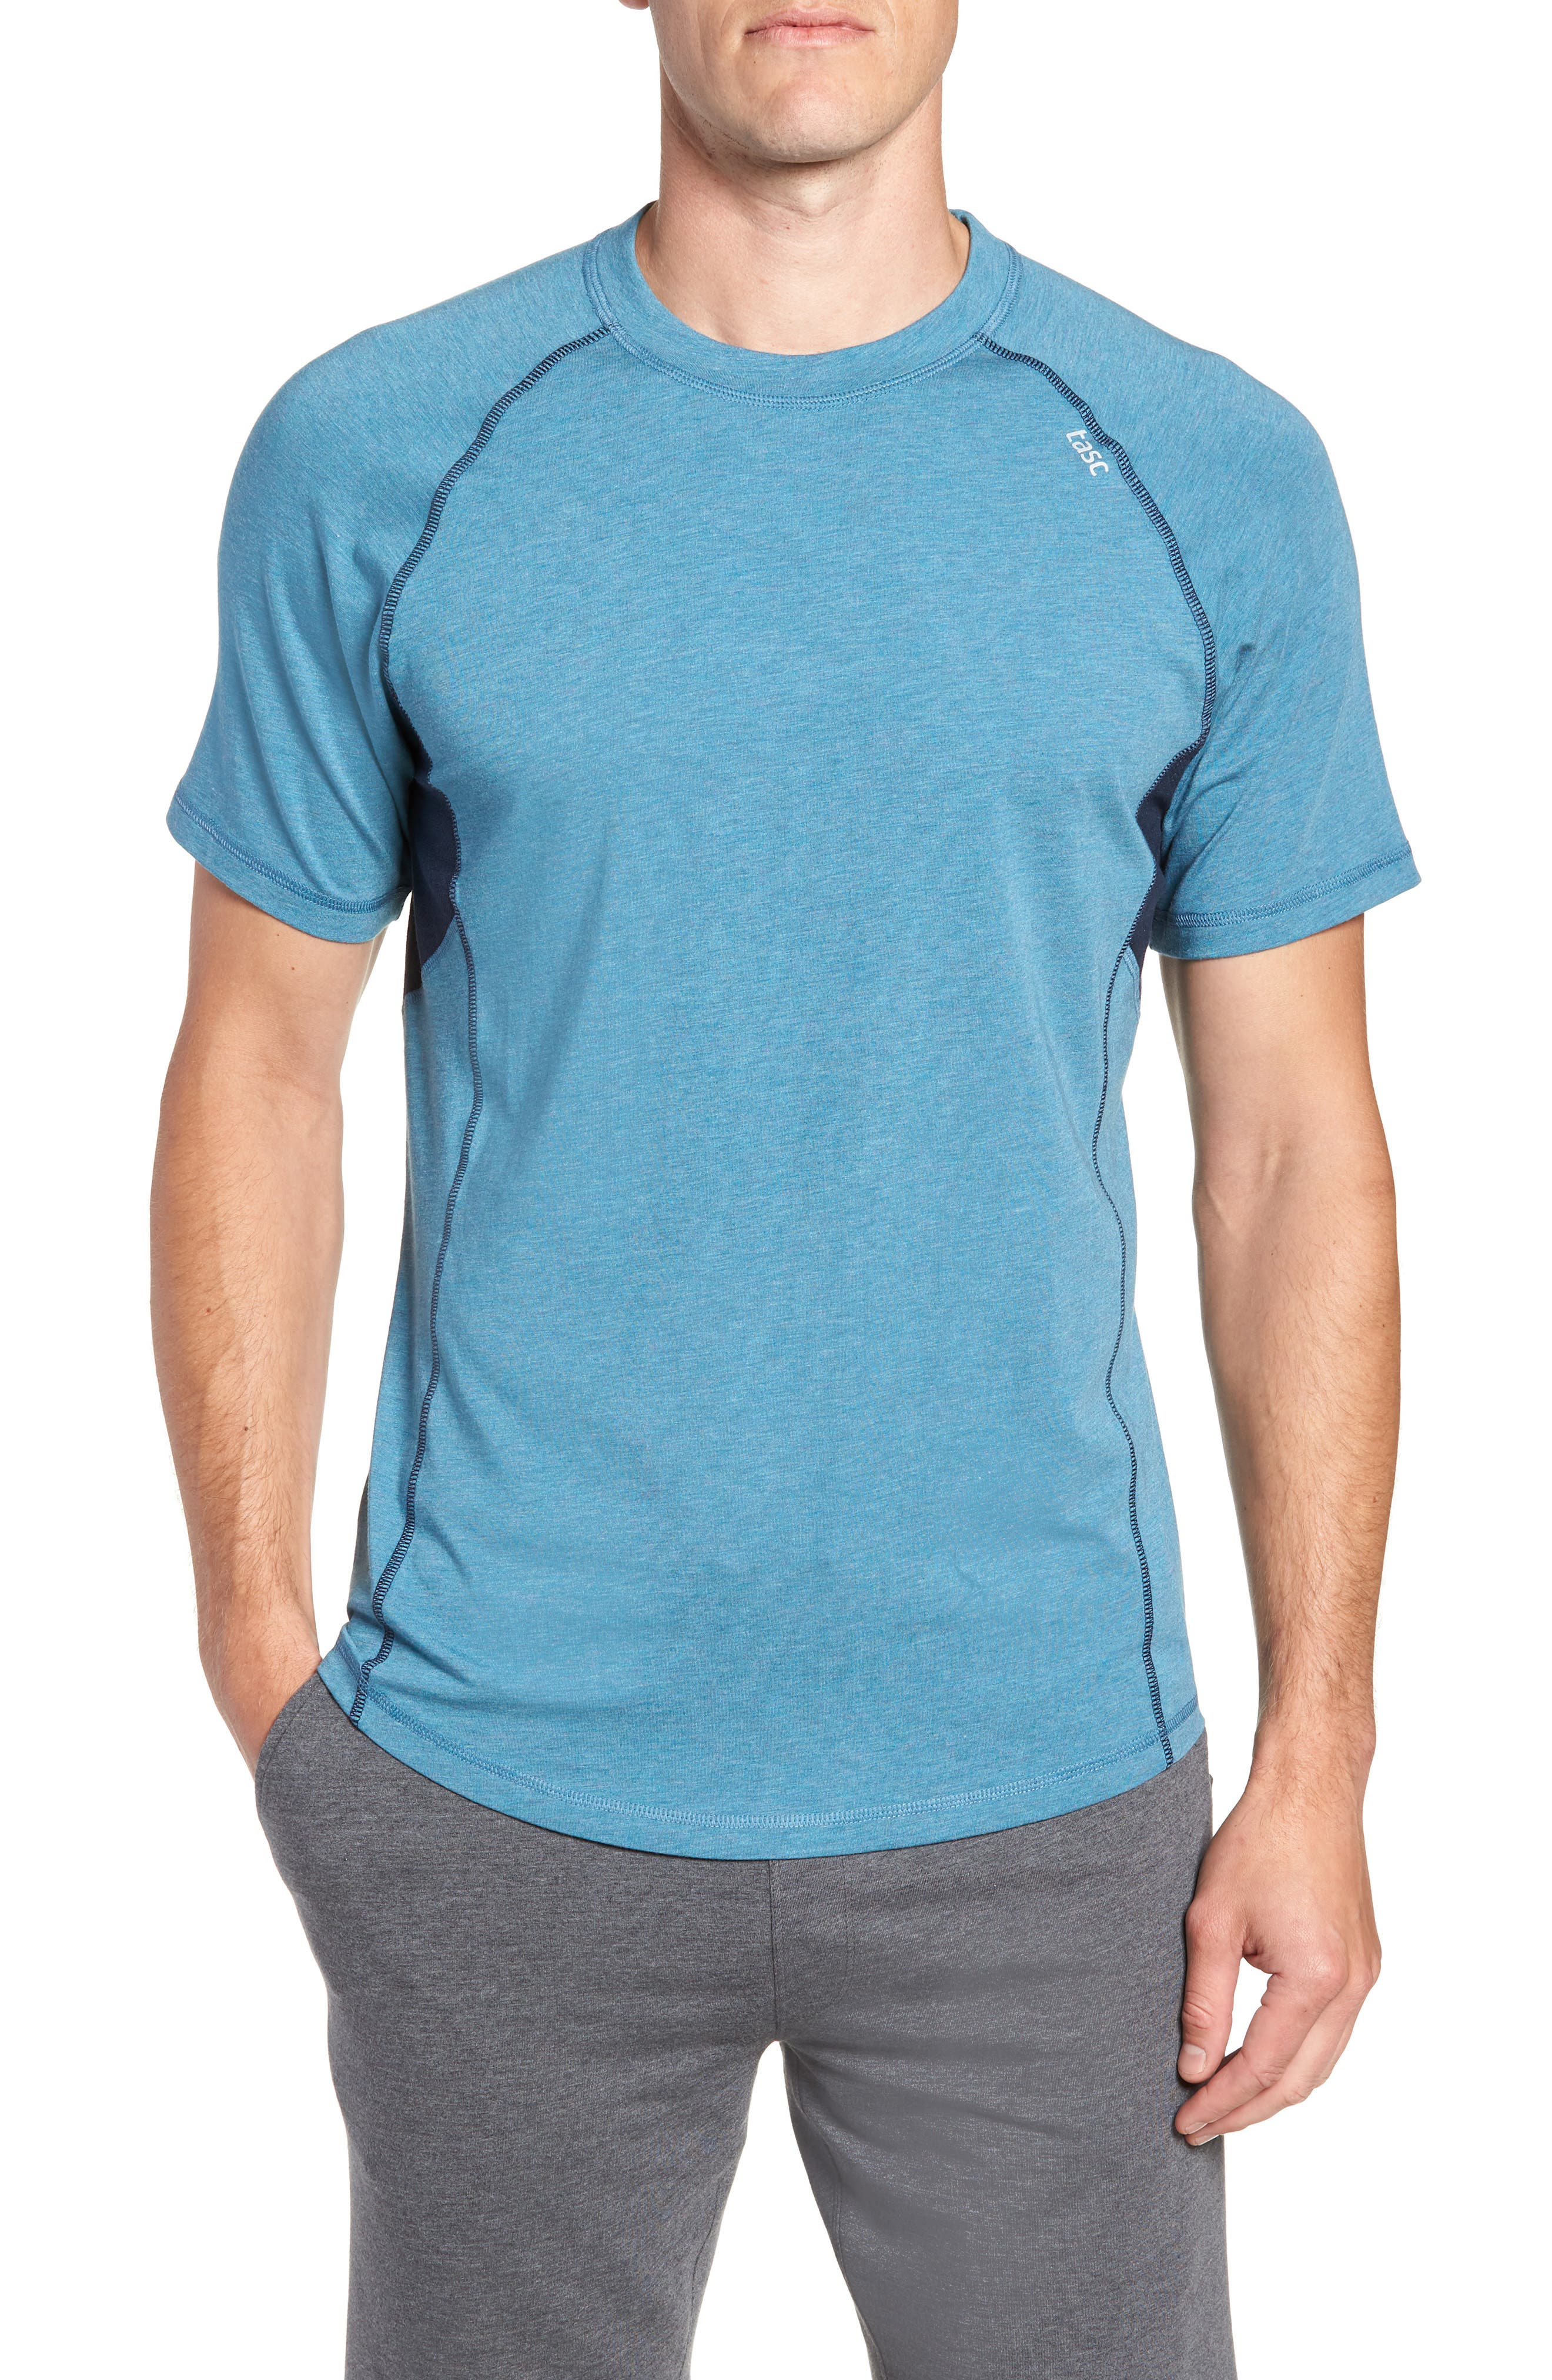 TASC PERFORMANCE, Charge II T-Shirt, Main thumbnail 1, color, TRANQUILITY SEA HEATHER